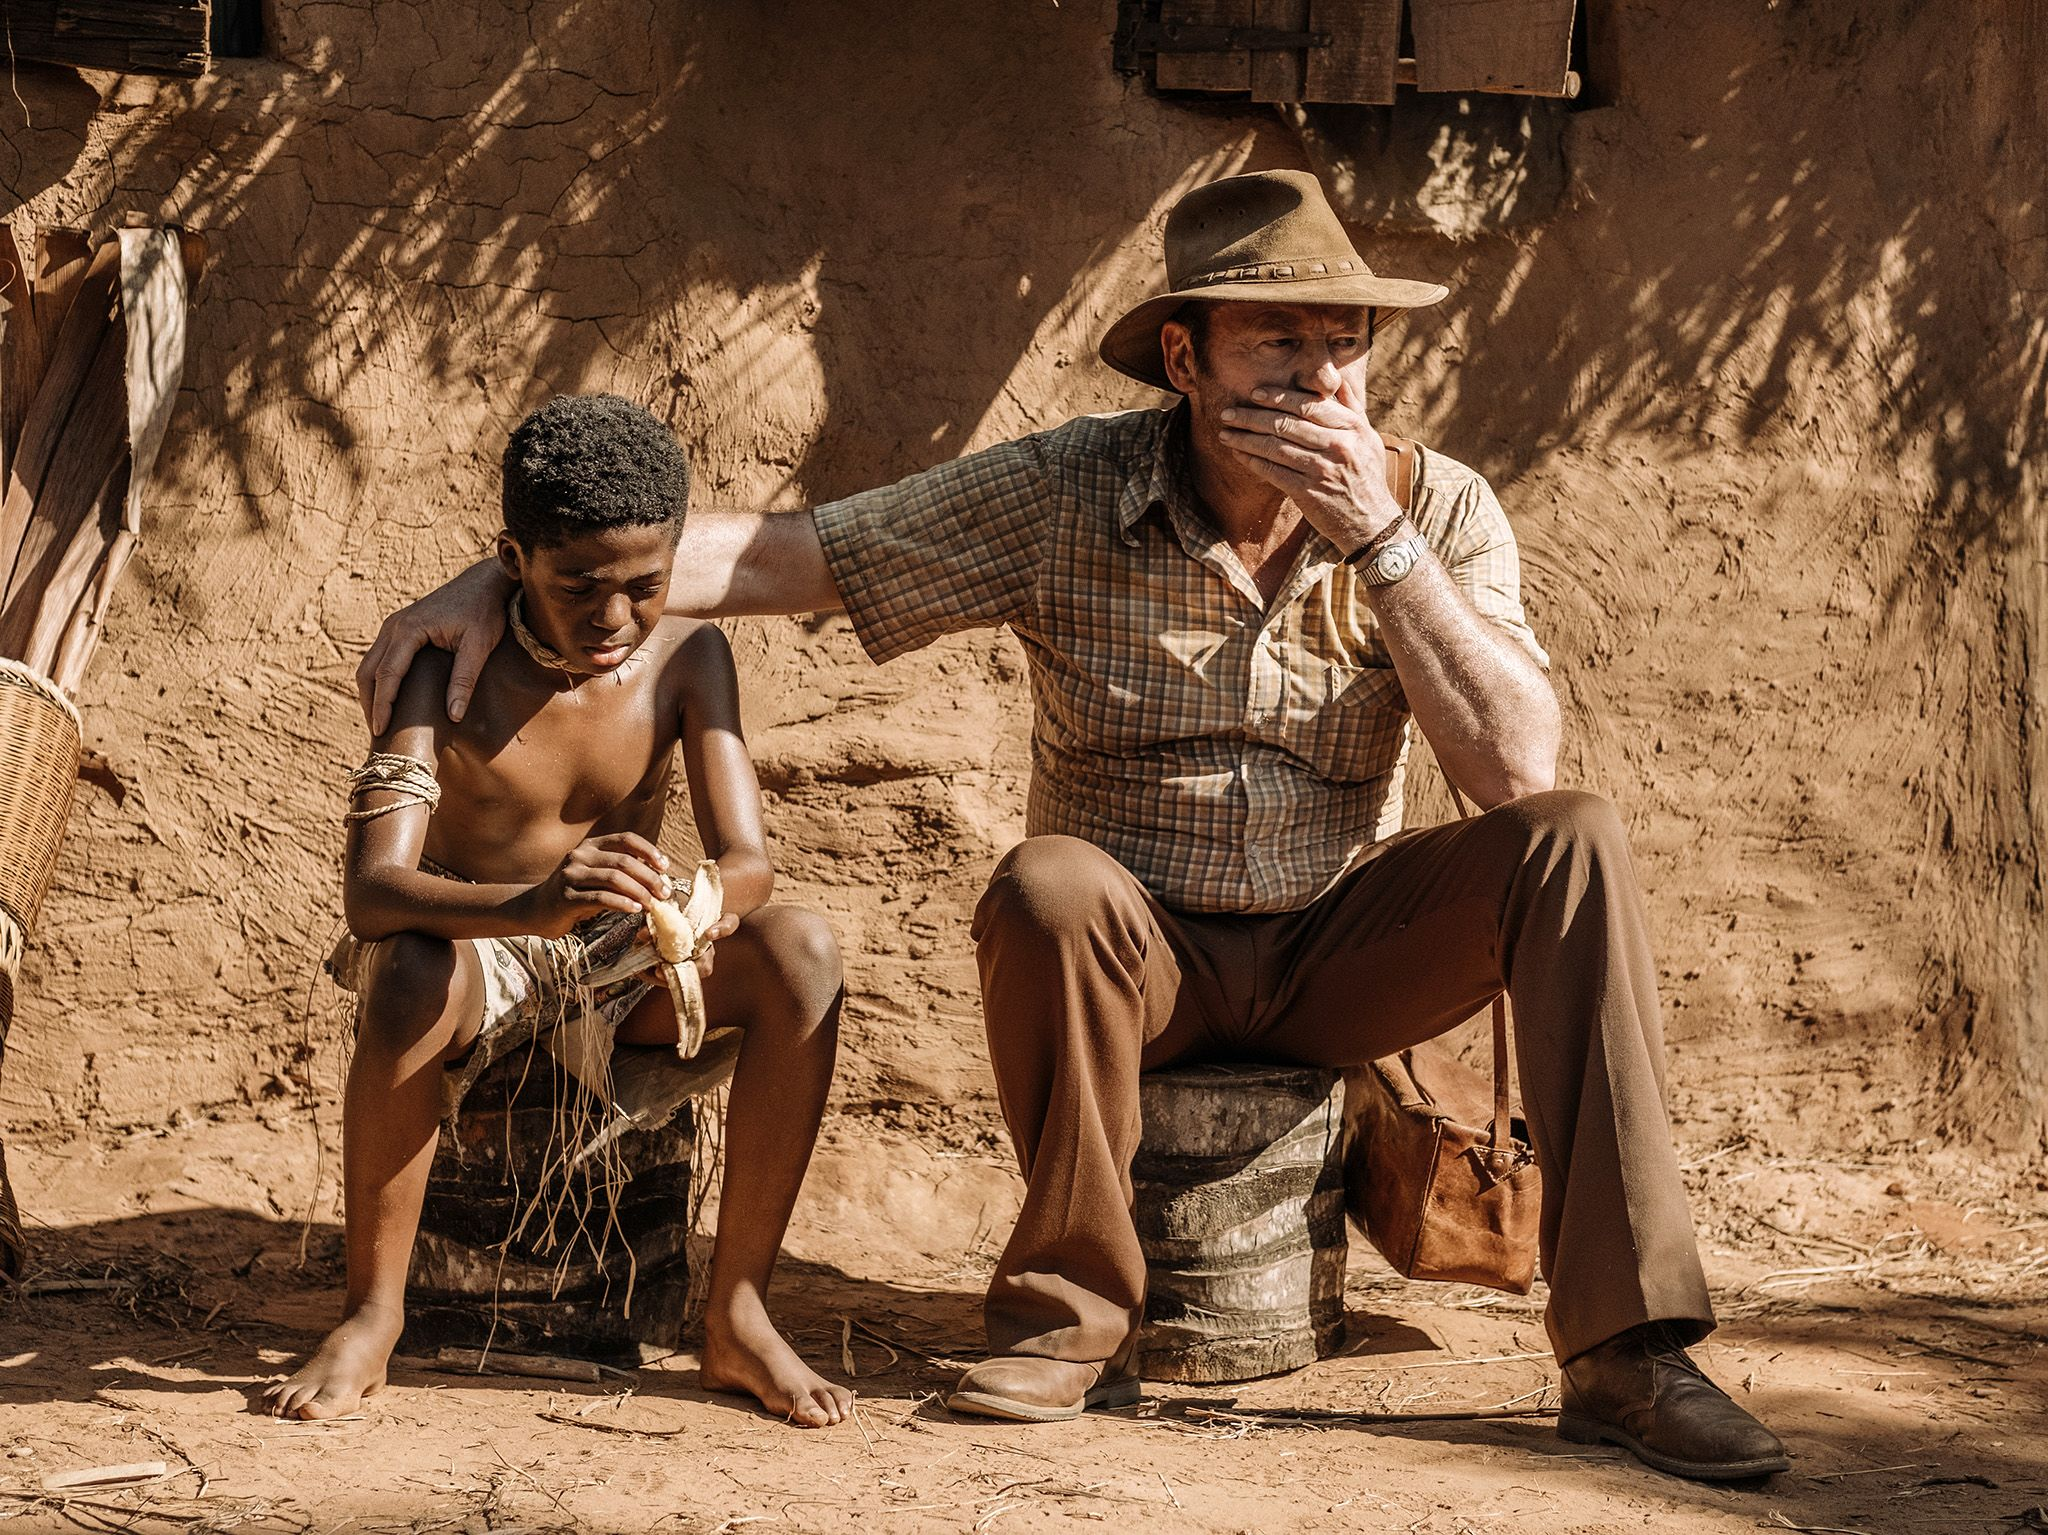 Wade Carter (Liam Cunningham),  sits with a young boy in Zaire.  This image is from The Hot Zone. [Photo of the day - می 2019]